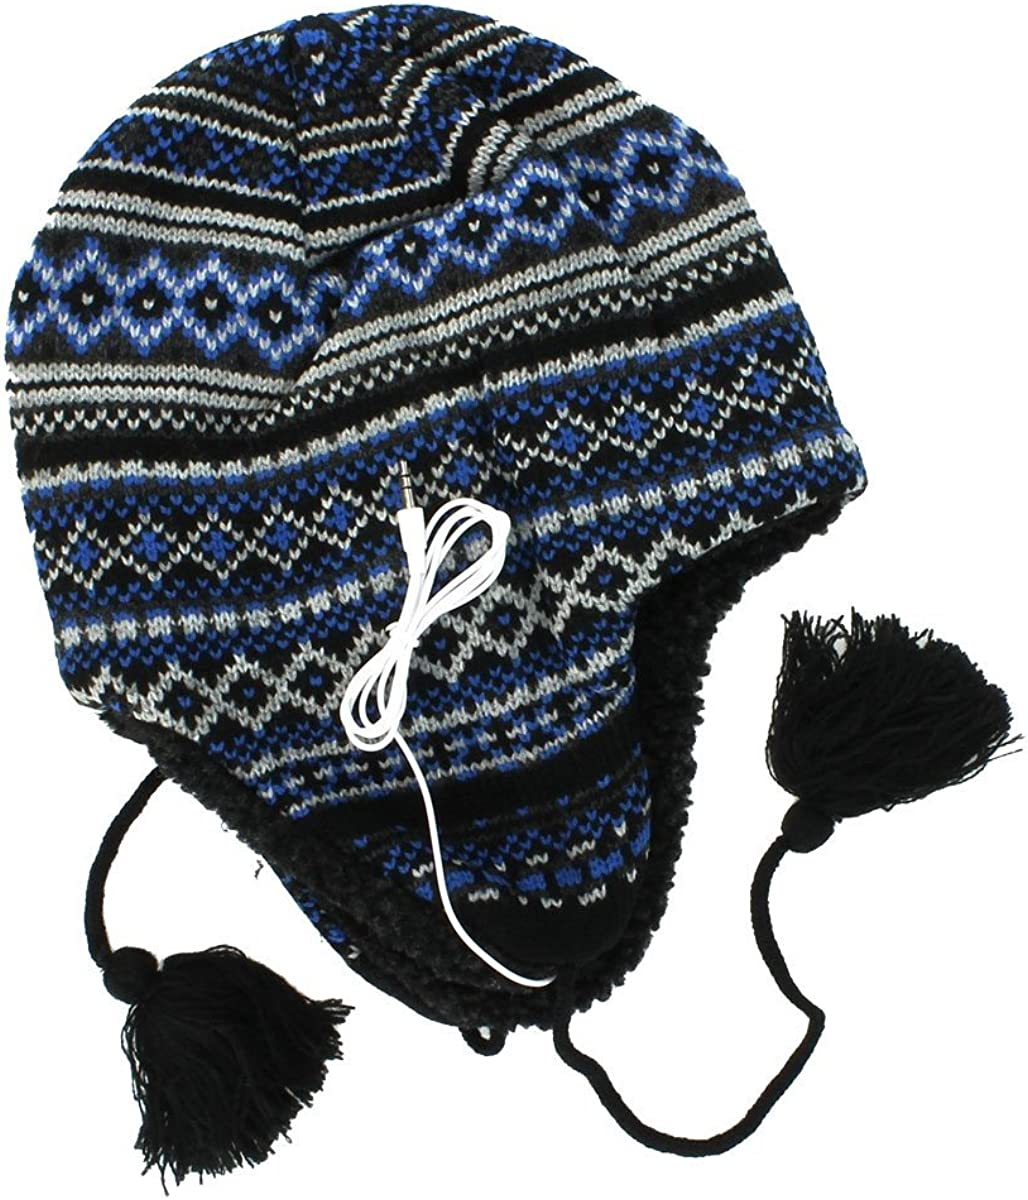 Knit Winter Hat One Size Urban Pipeline Headphones Beanie for Men